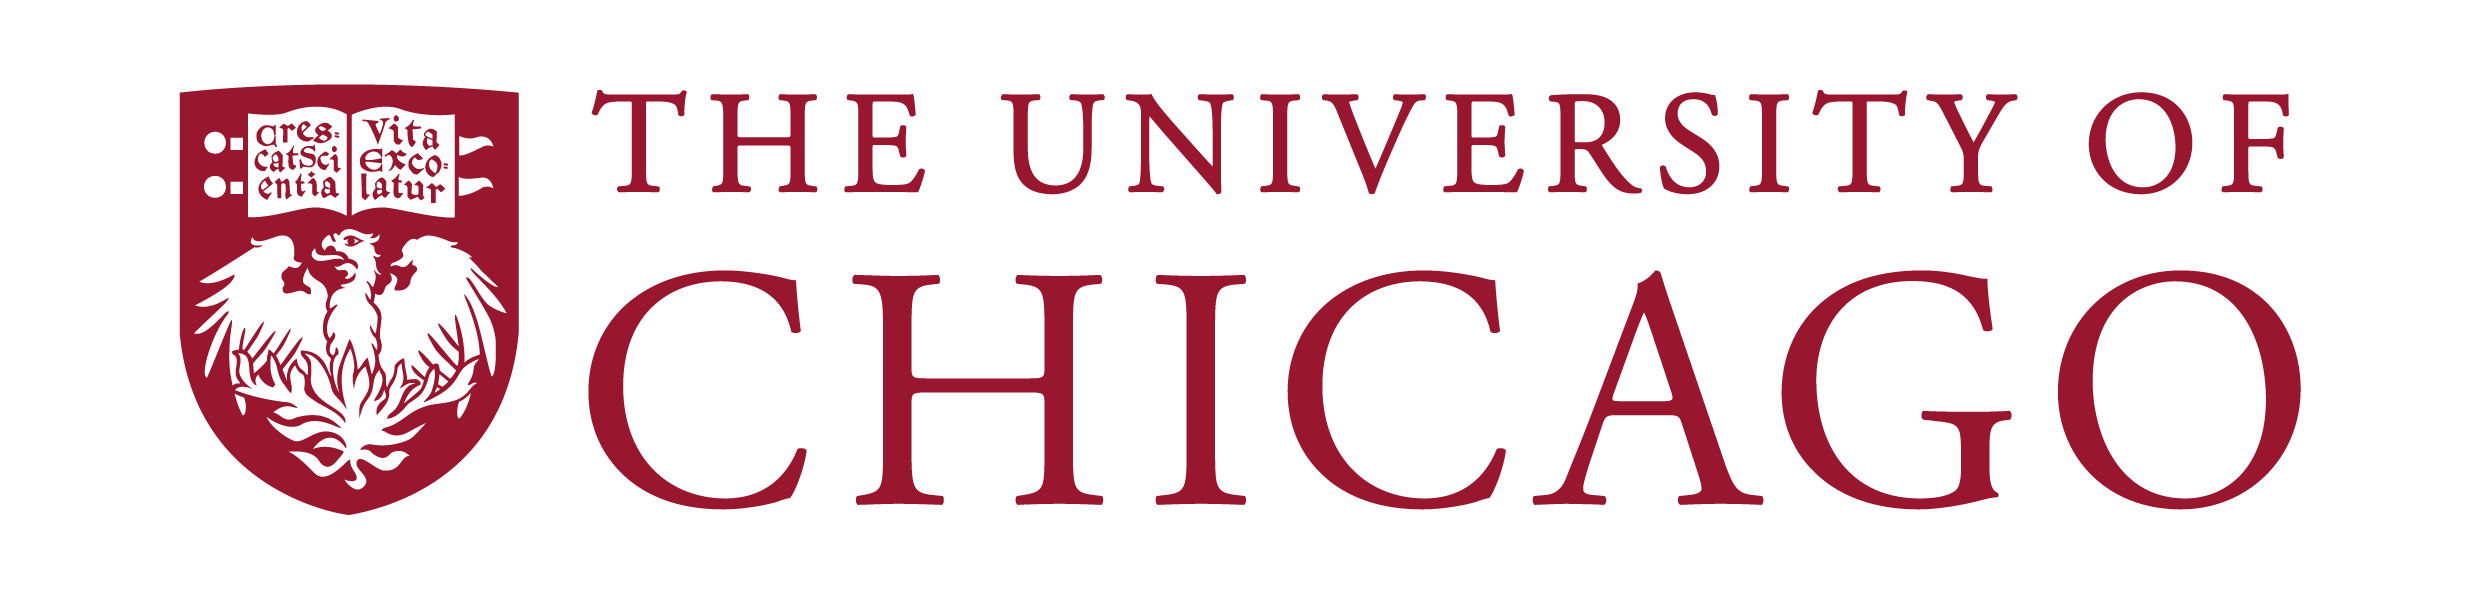 the_university_of_chicago-01